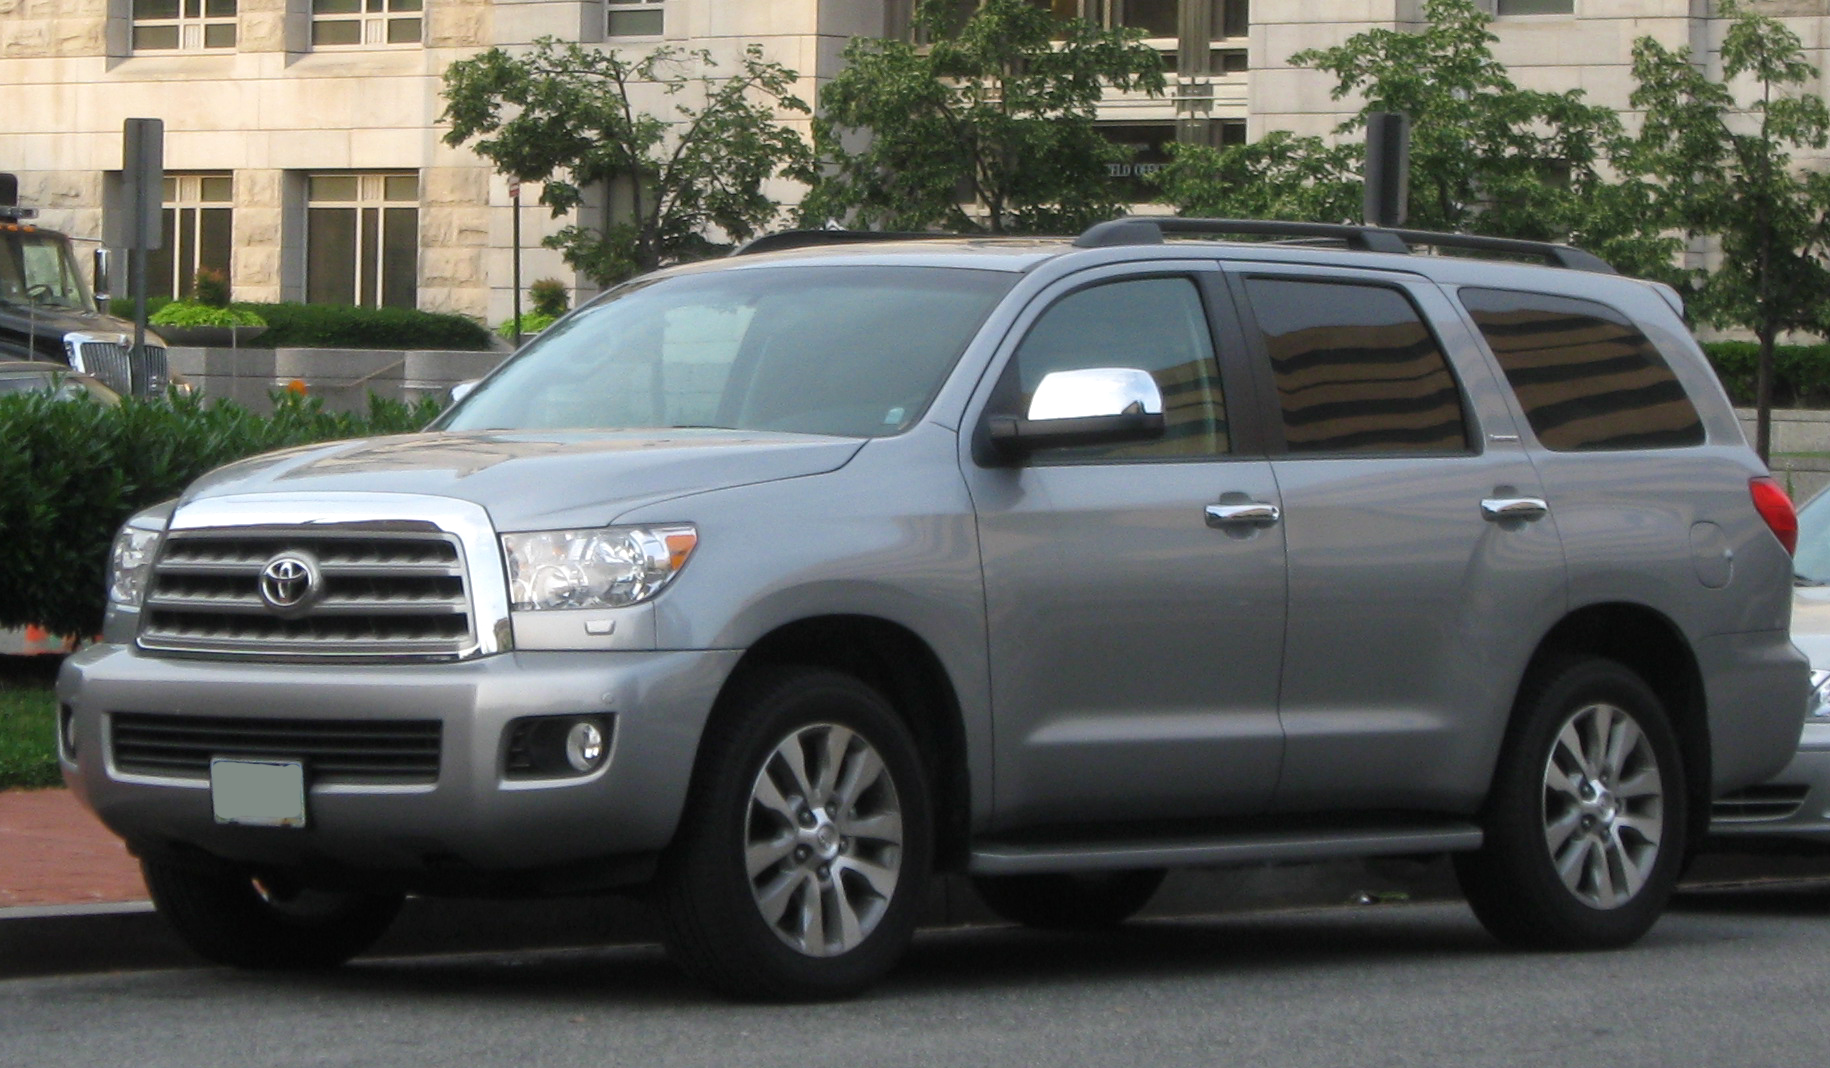 File:2008-2009 Toyota Sequoia Limited.jpg - Wikipedia